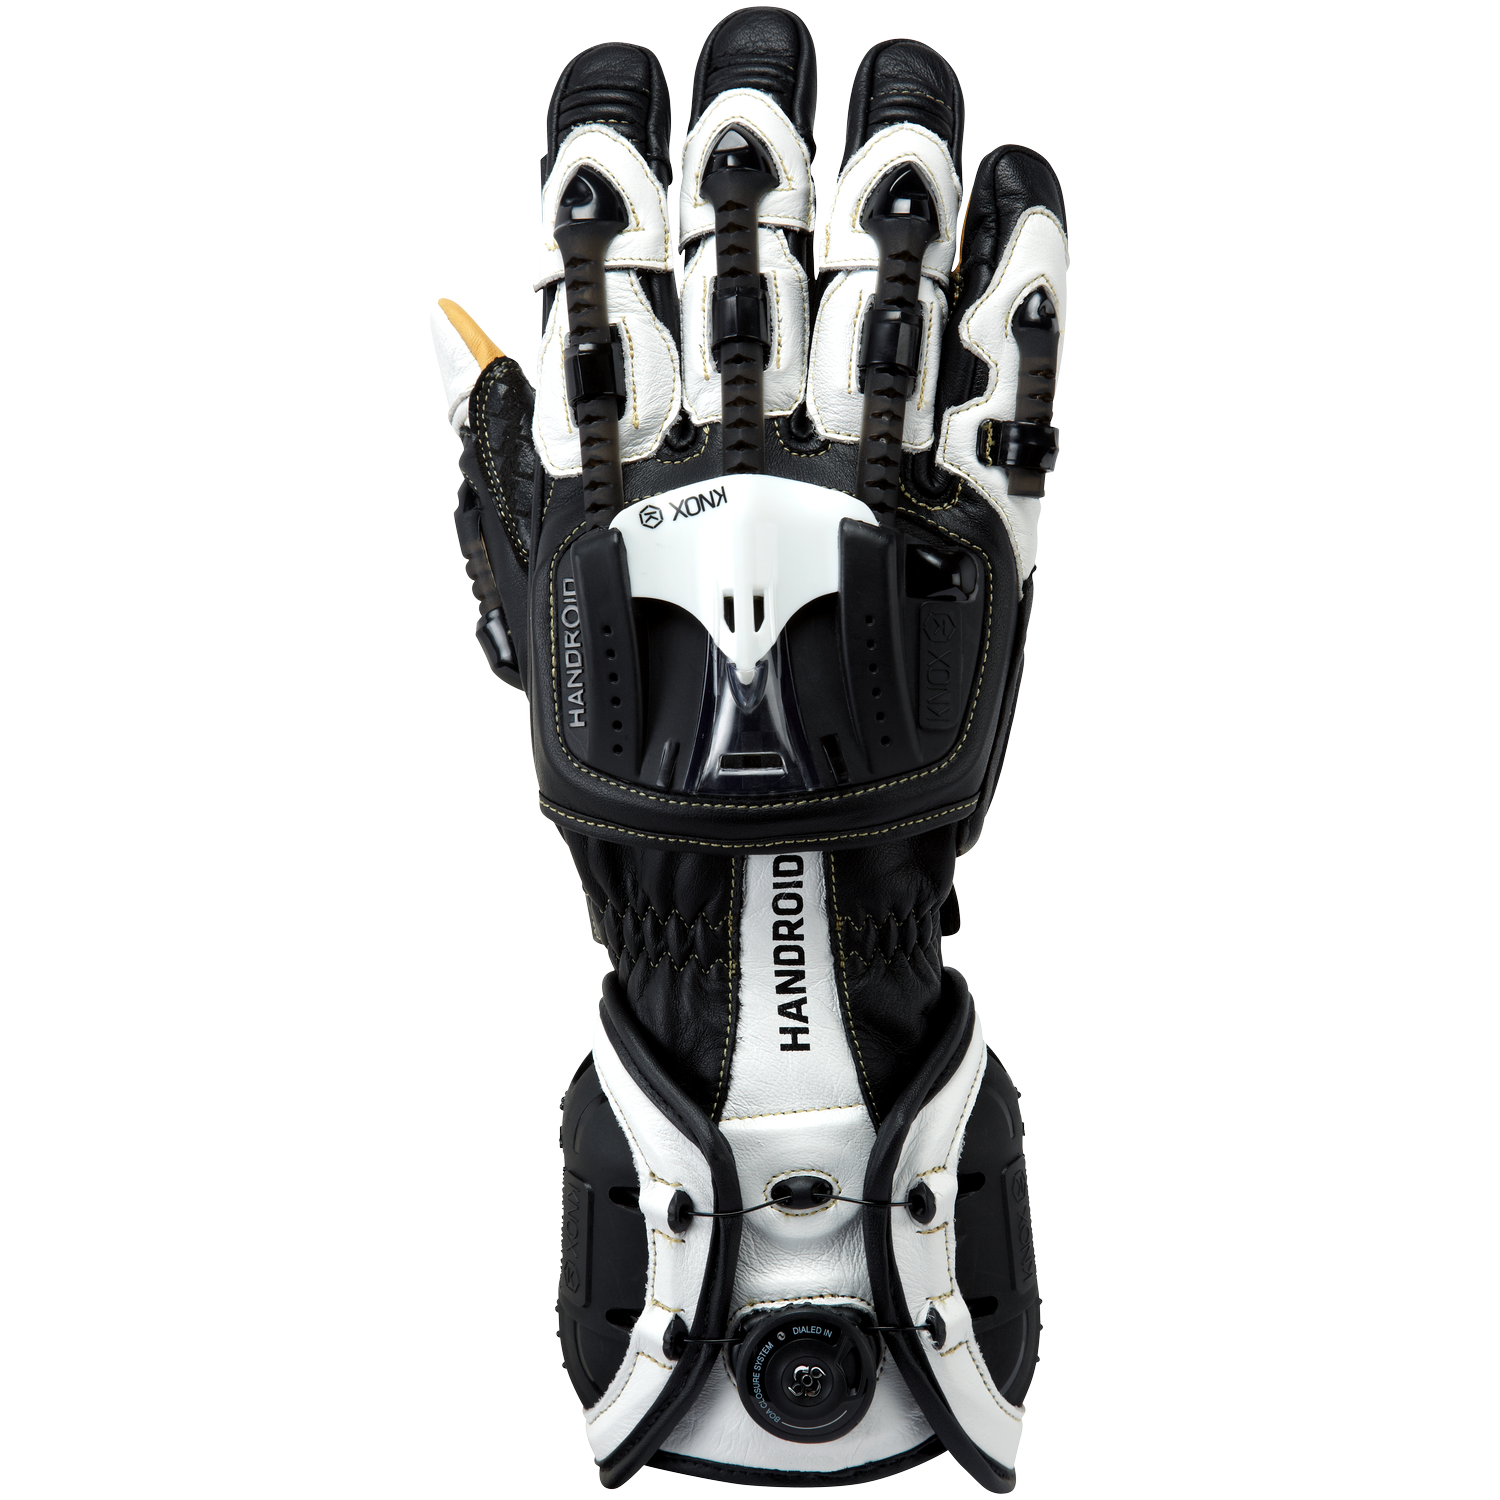 Motorcycle gloves ce approved - Handroid S Are The Best Motorcycle Gloves In The World Award Winning Design With Exo Skeletal Fingers Patented Scaphoid Protection And Boa Closure System